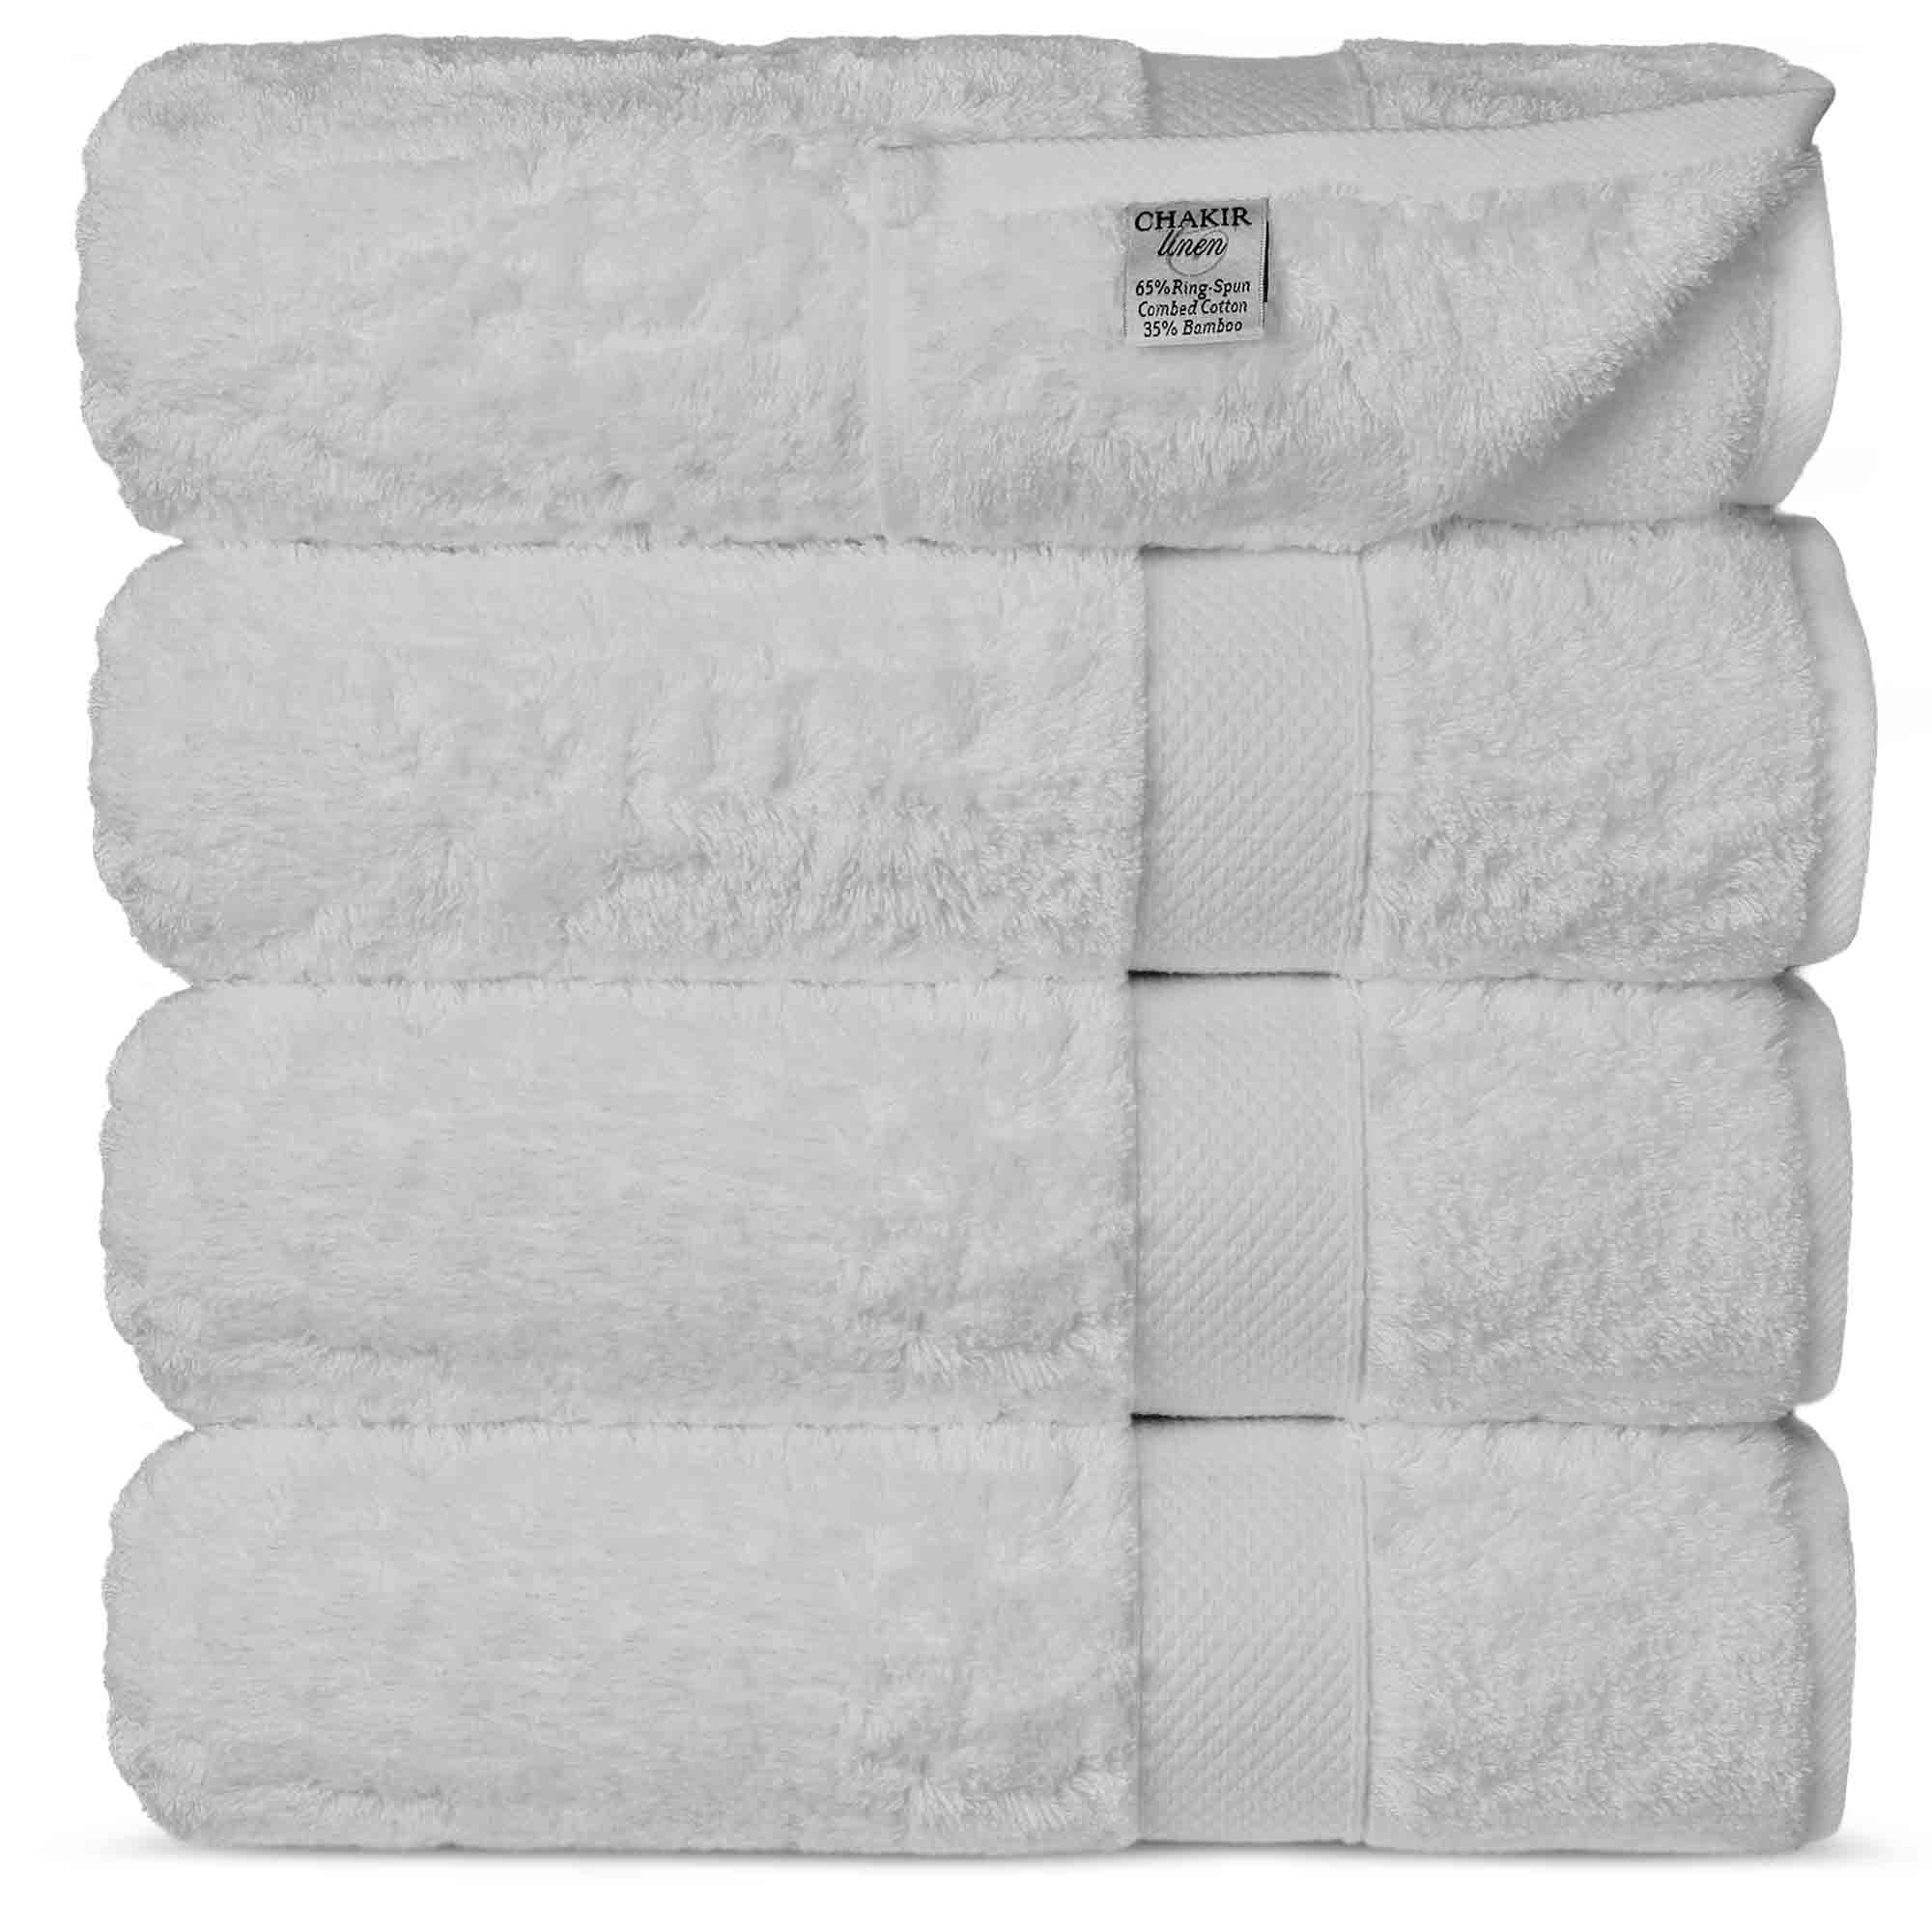 Chakir Turkish Linens Luxury Ultra Bamboo 4-Piece Bath Towel Set - Soft, Absorbent and Eco-Friendly, White